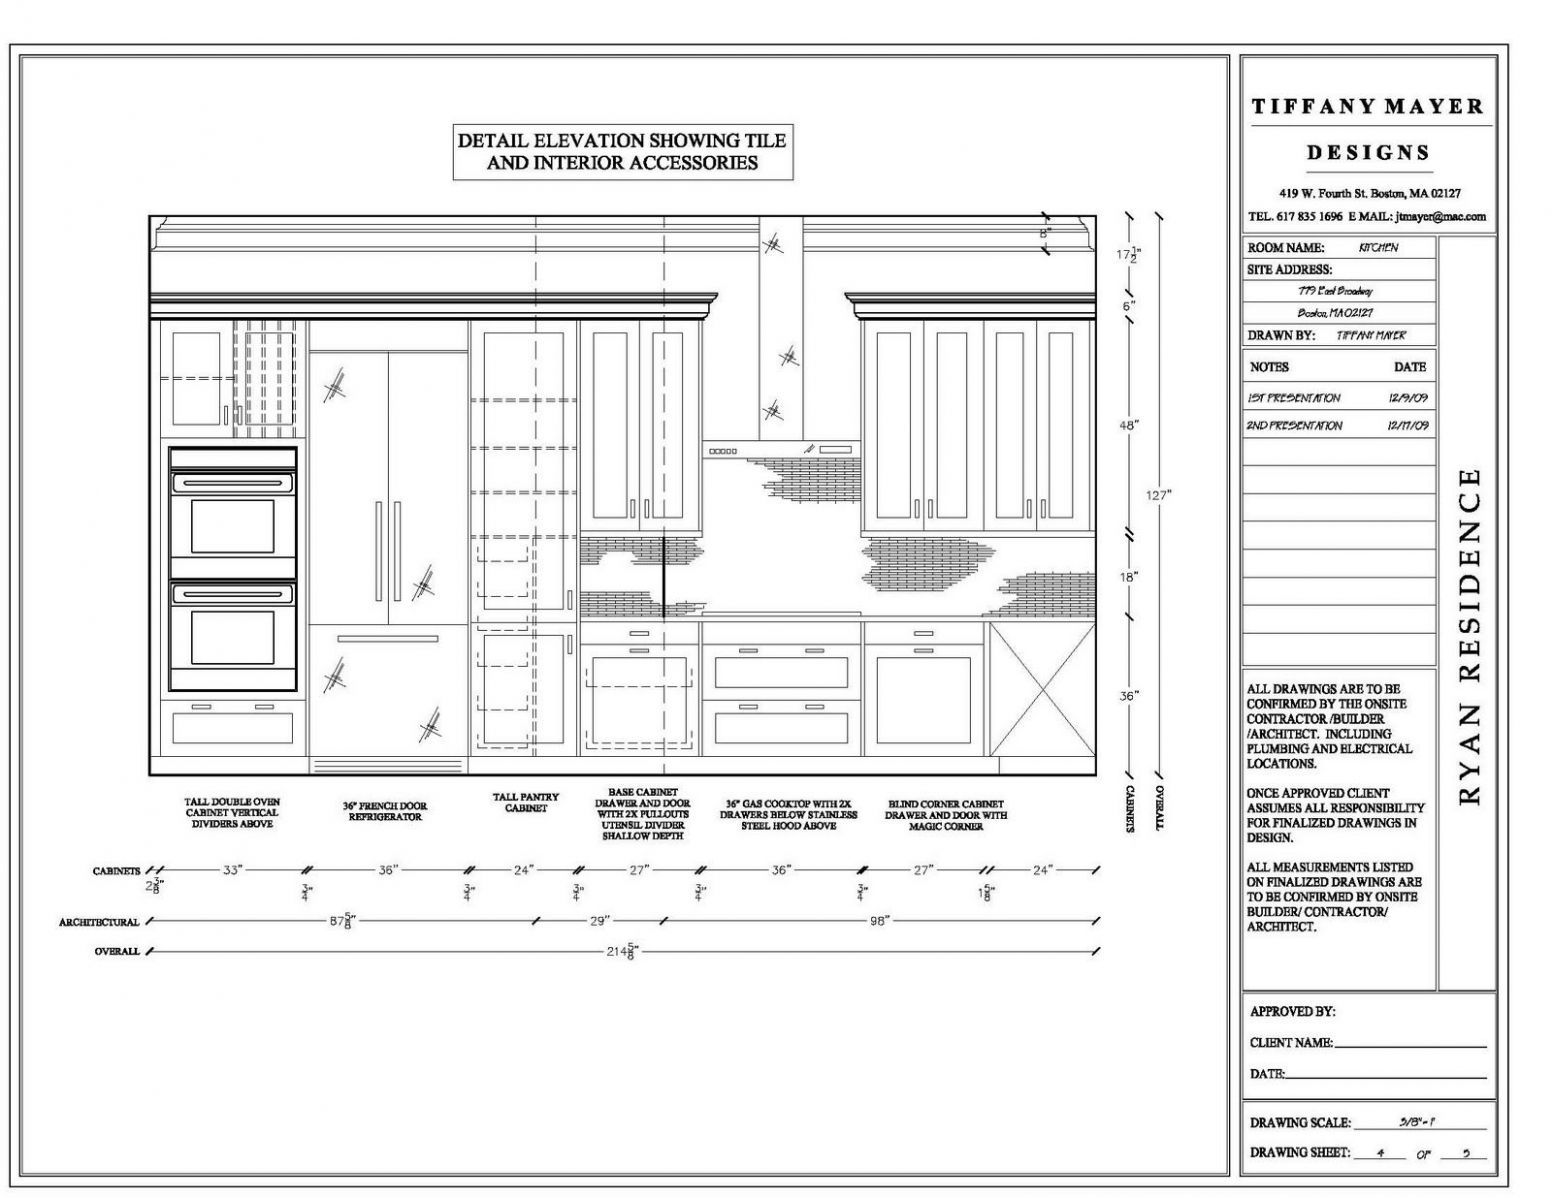 elevation drawings cabinet detail drawing size interior design ...